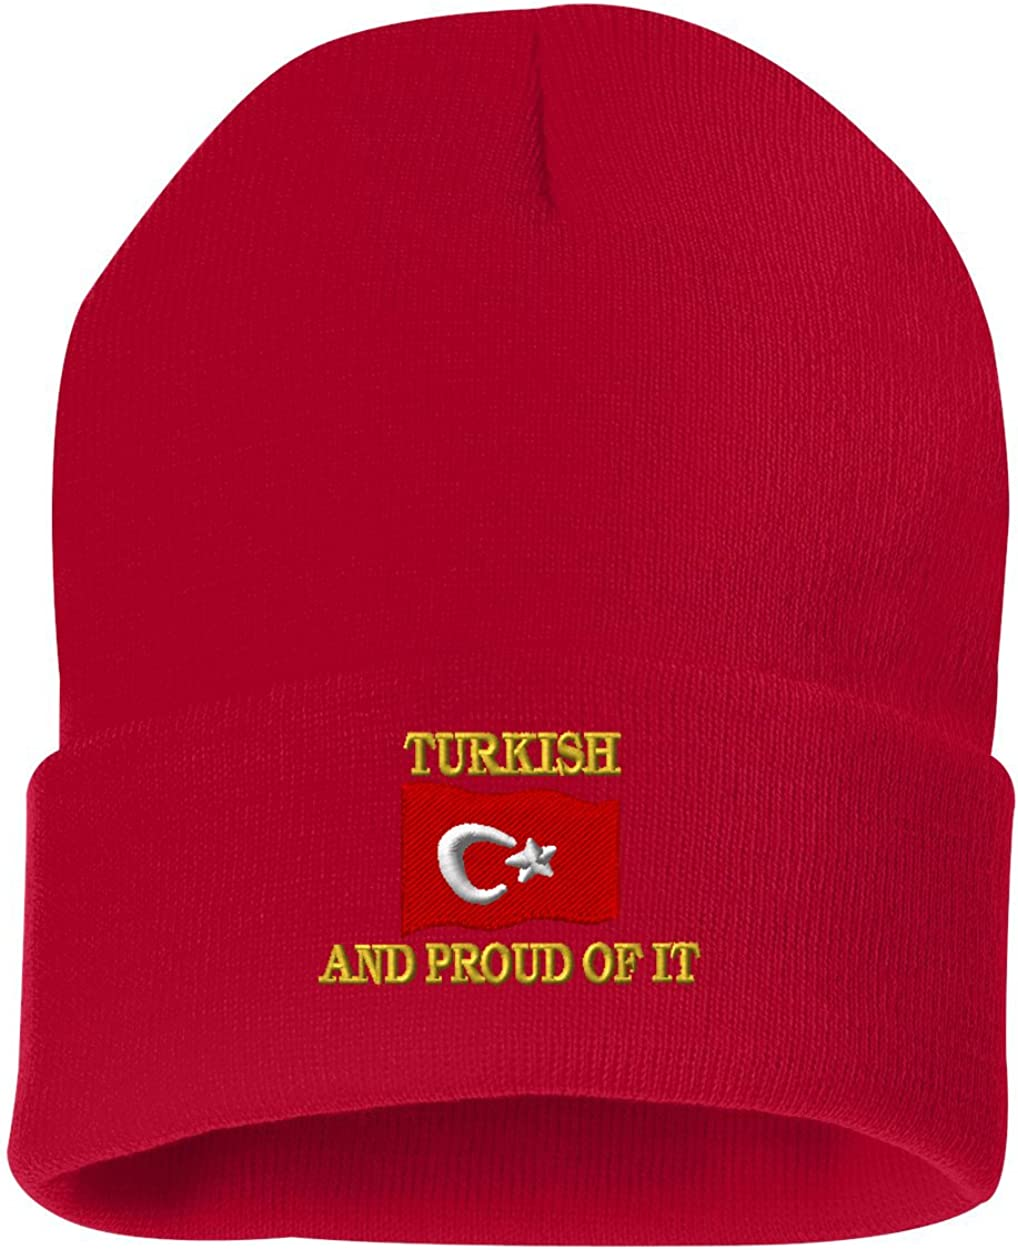 TURKISH AND PROUD OF IT Custom Personalized Embroidery Embroidered Beanie